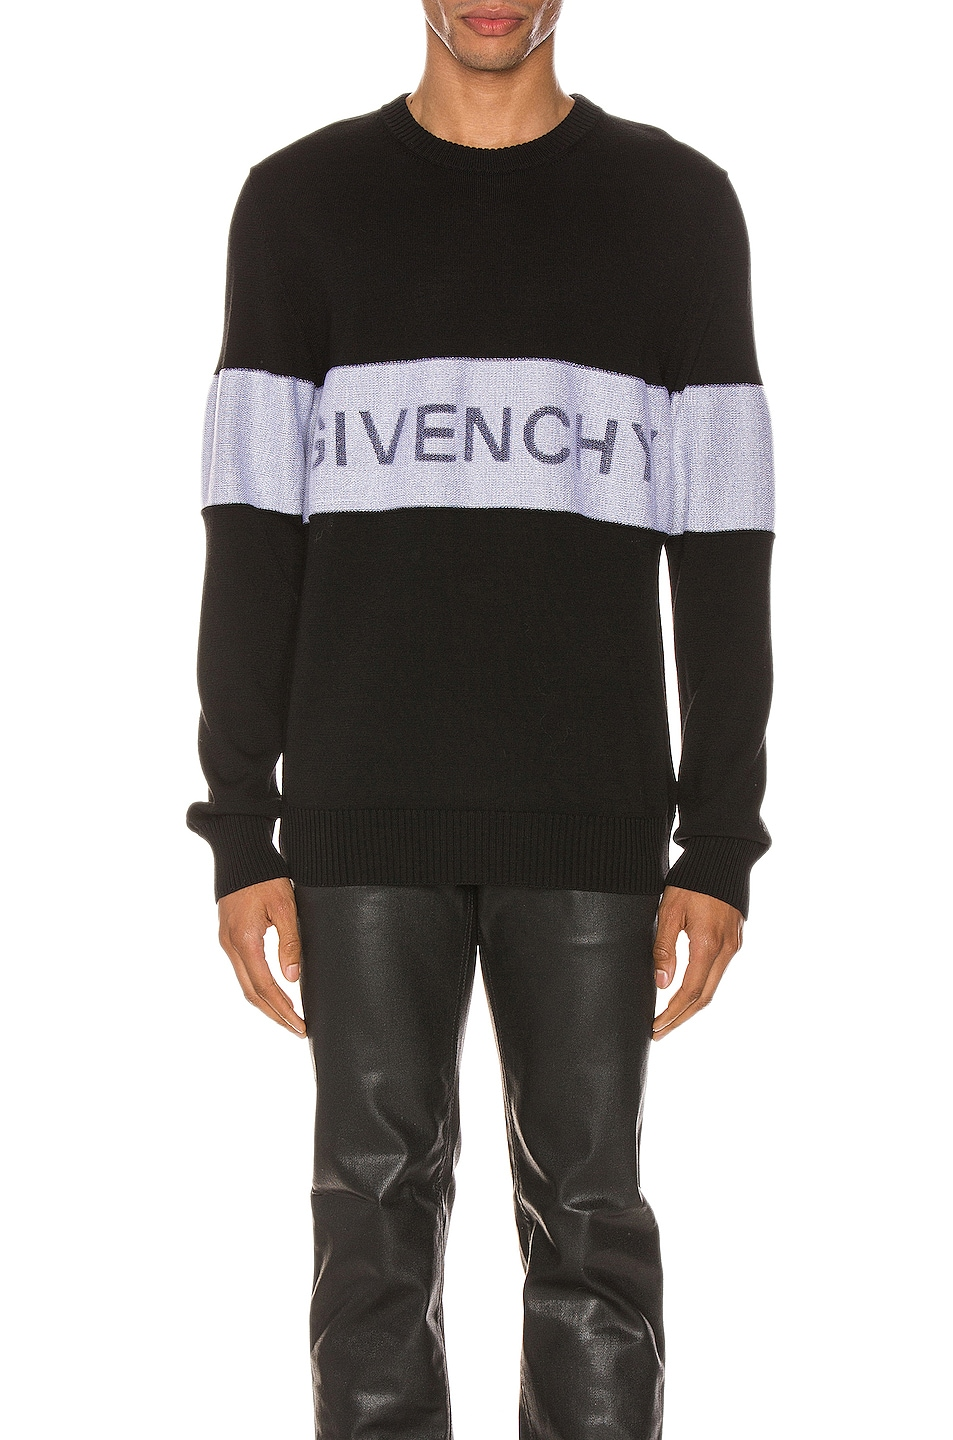 Image 1 of Givenchy Crewneck in Black & White